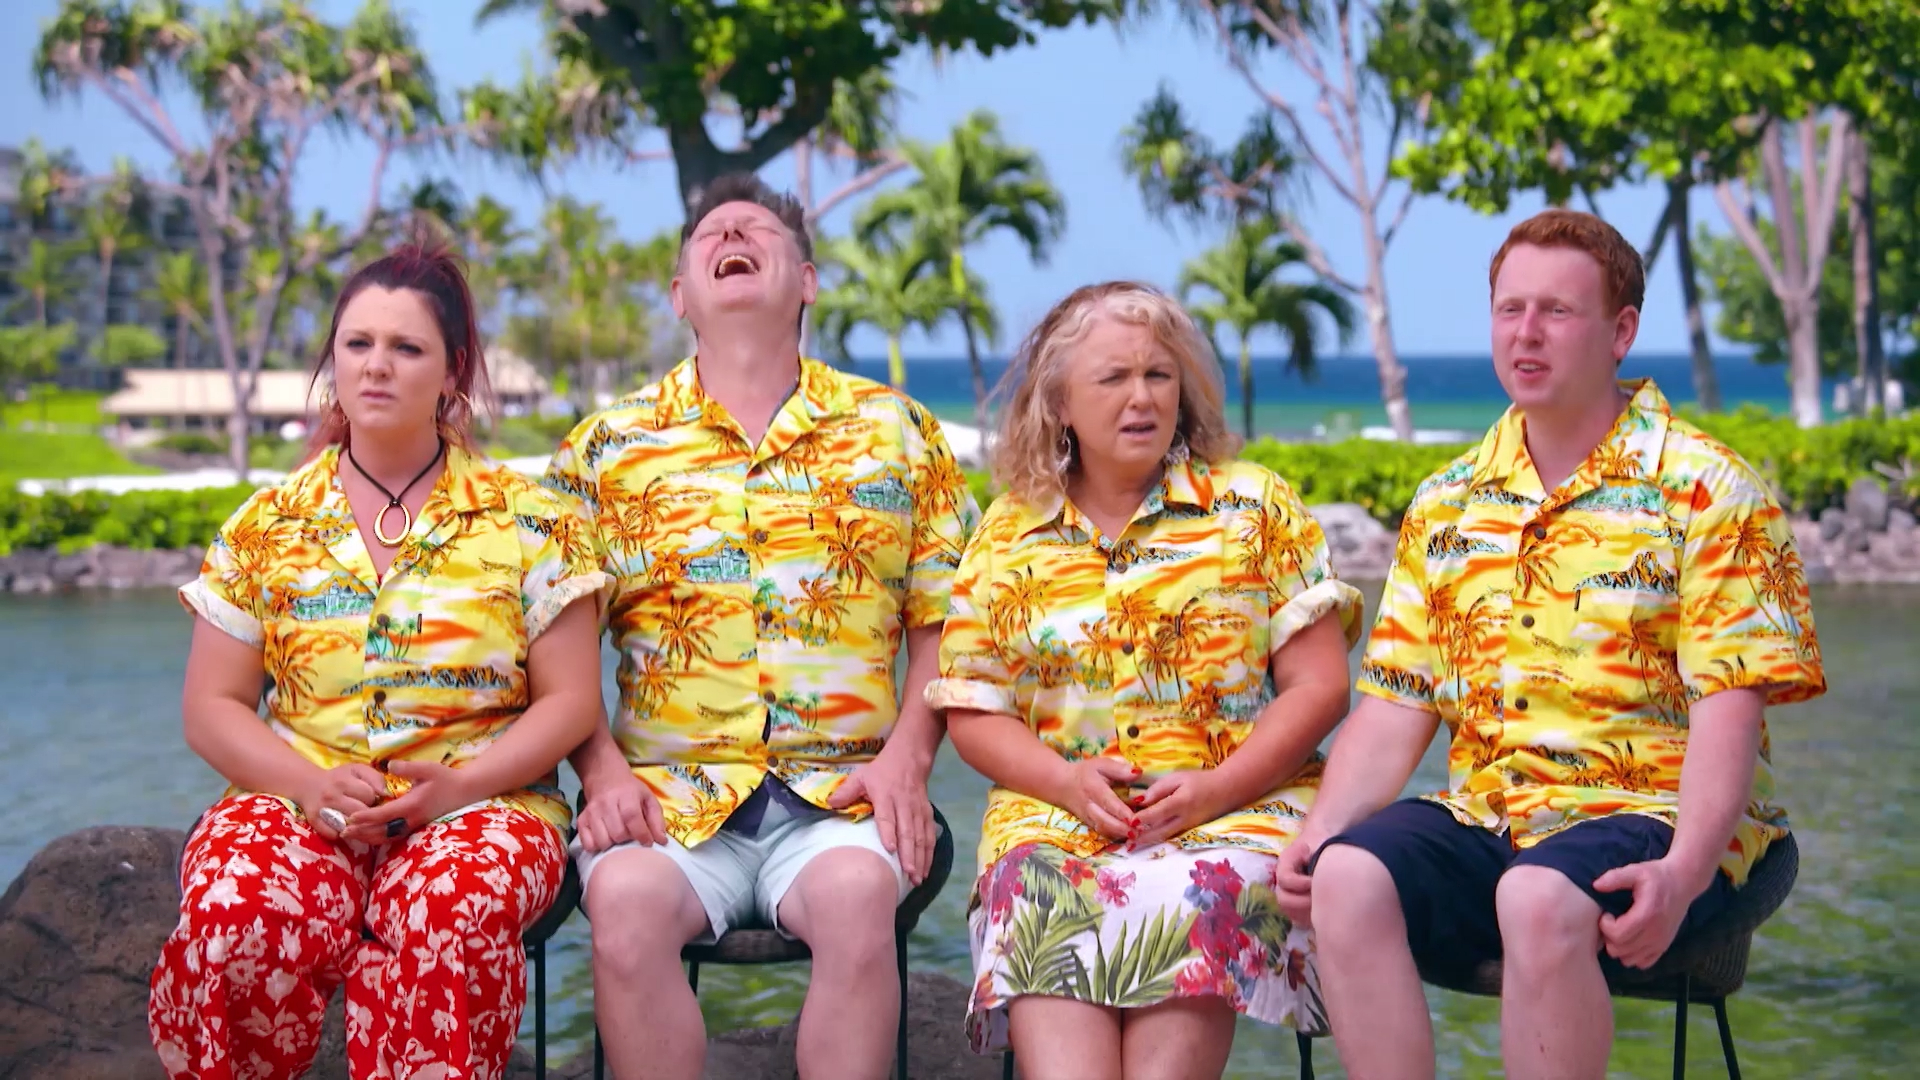 The Frens get their Hawaii on with matching shirts